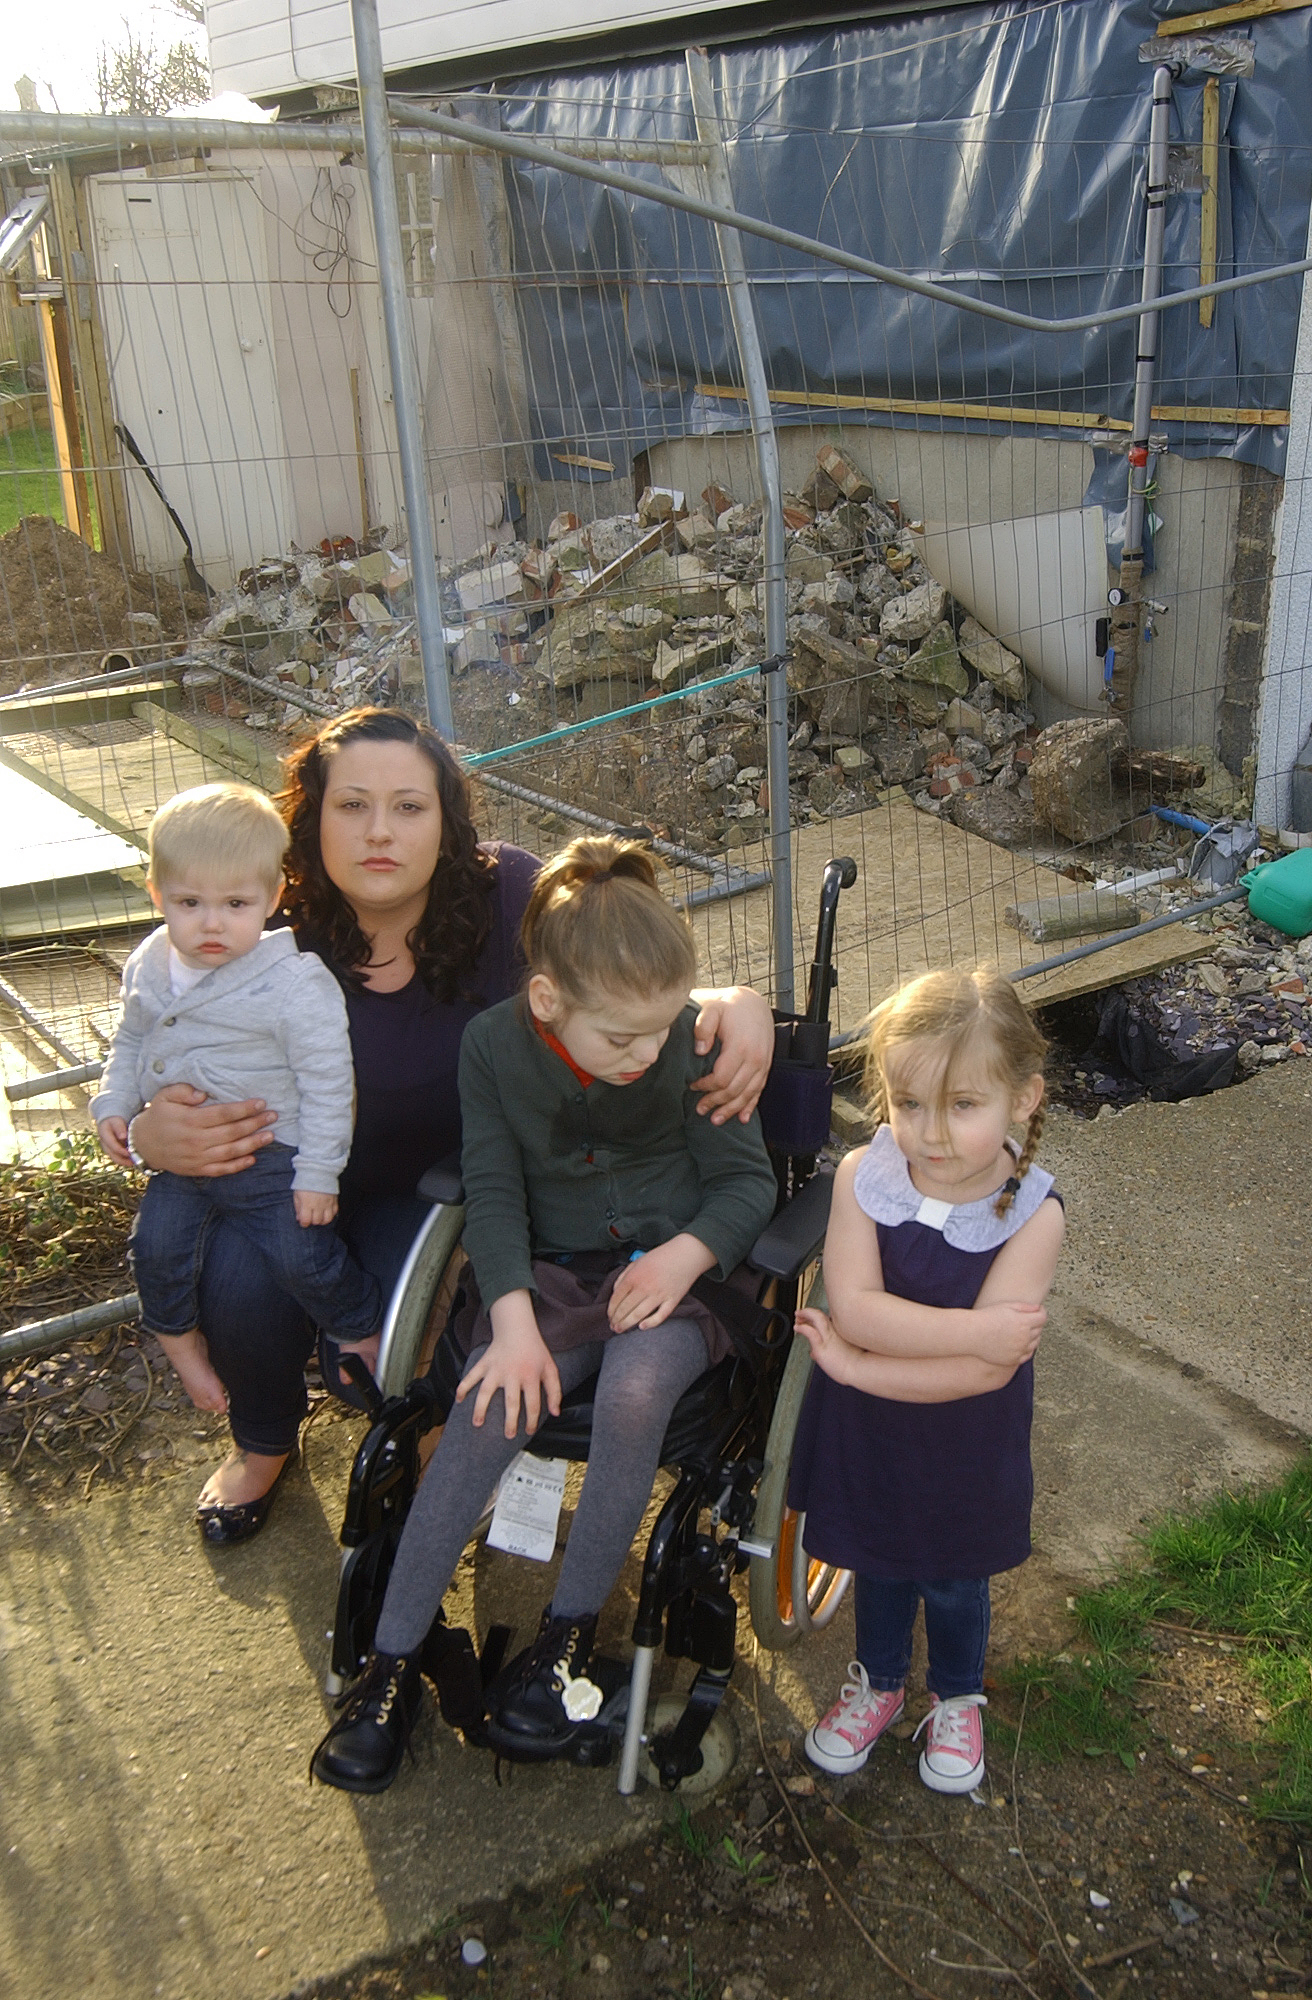 Mum of disabled child left with 'building site' home as extension stops for 14 weeks